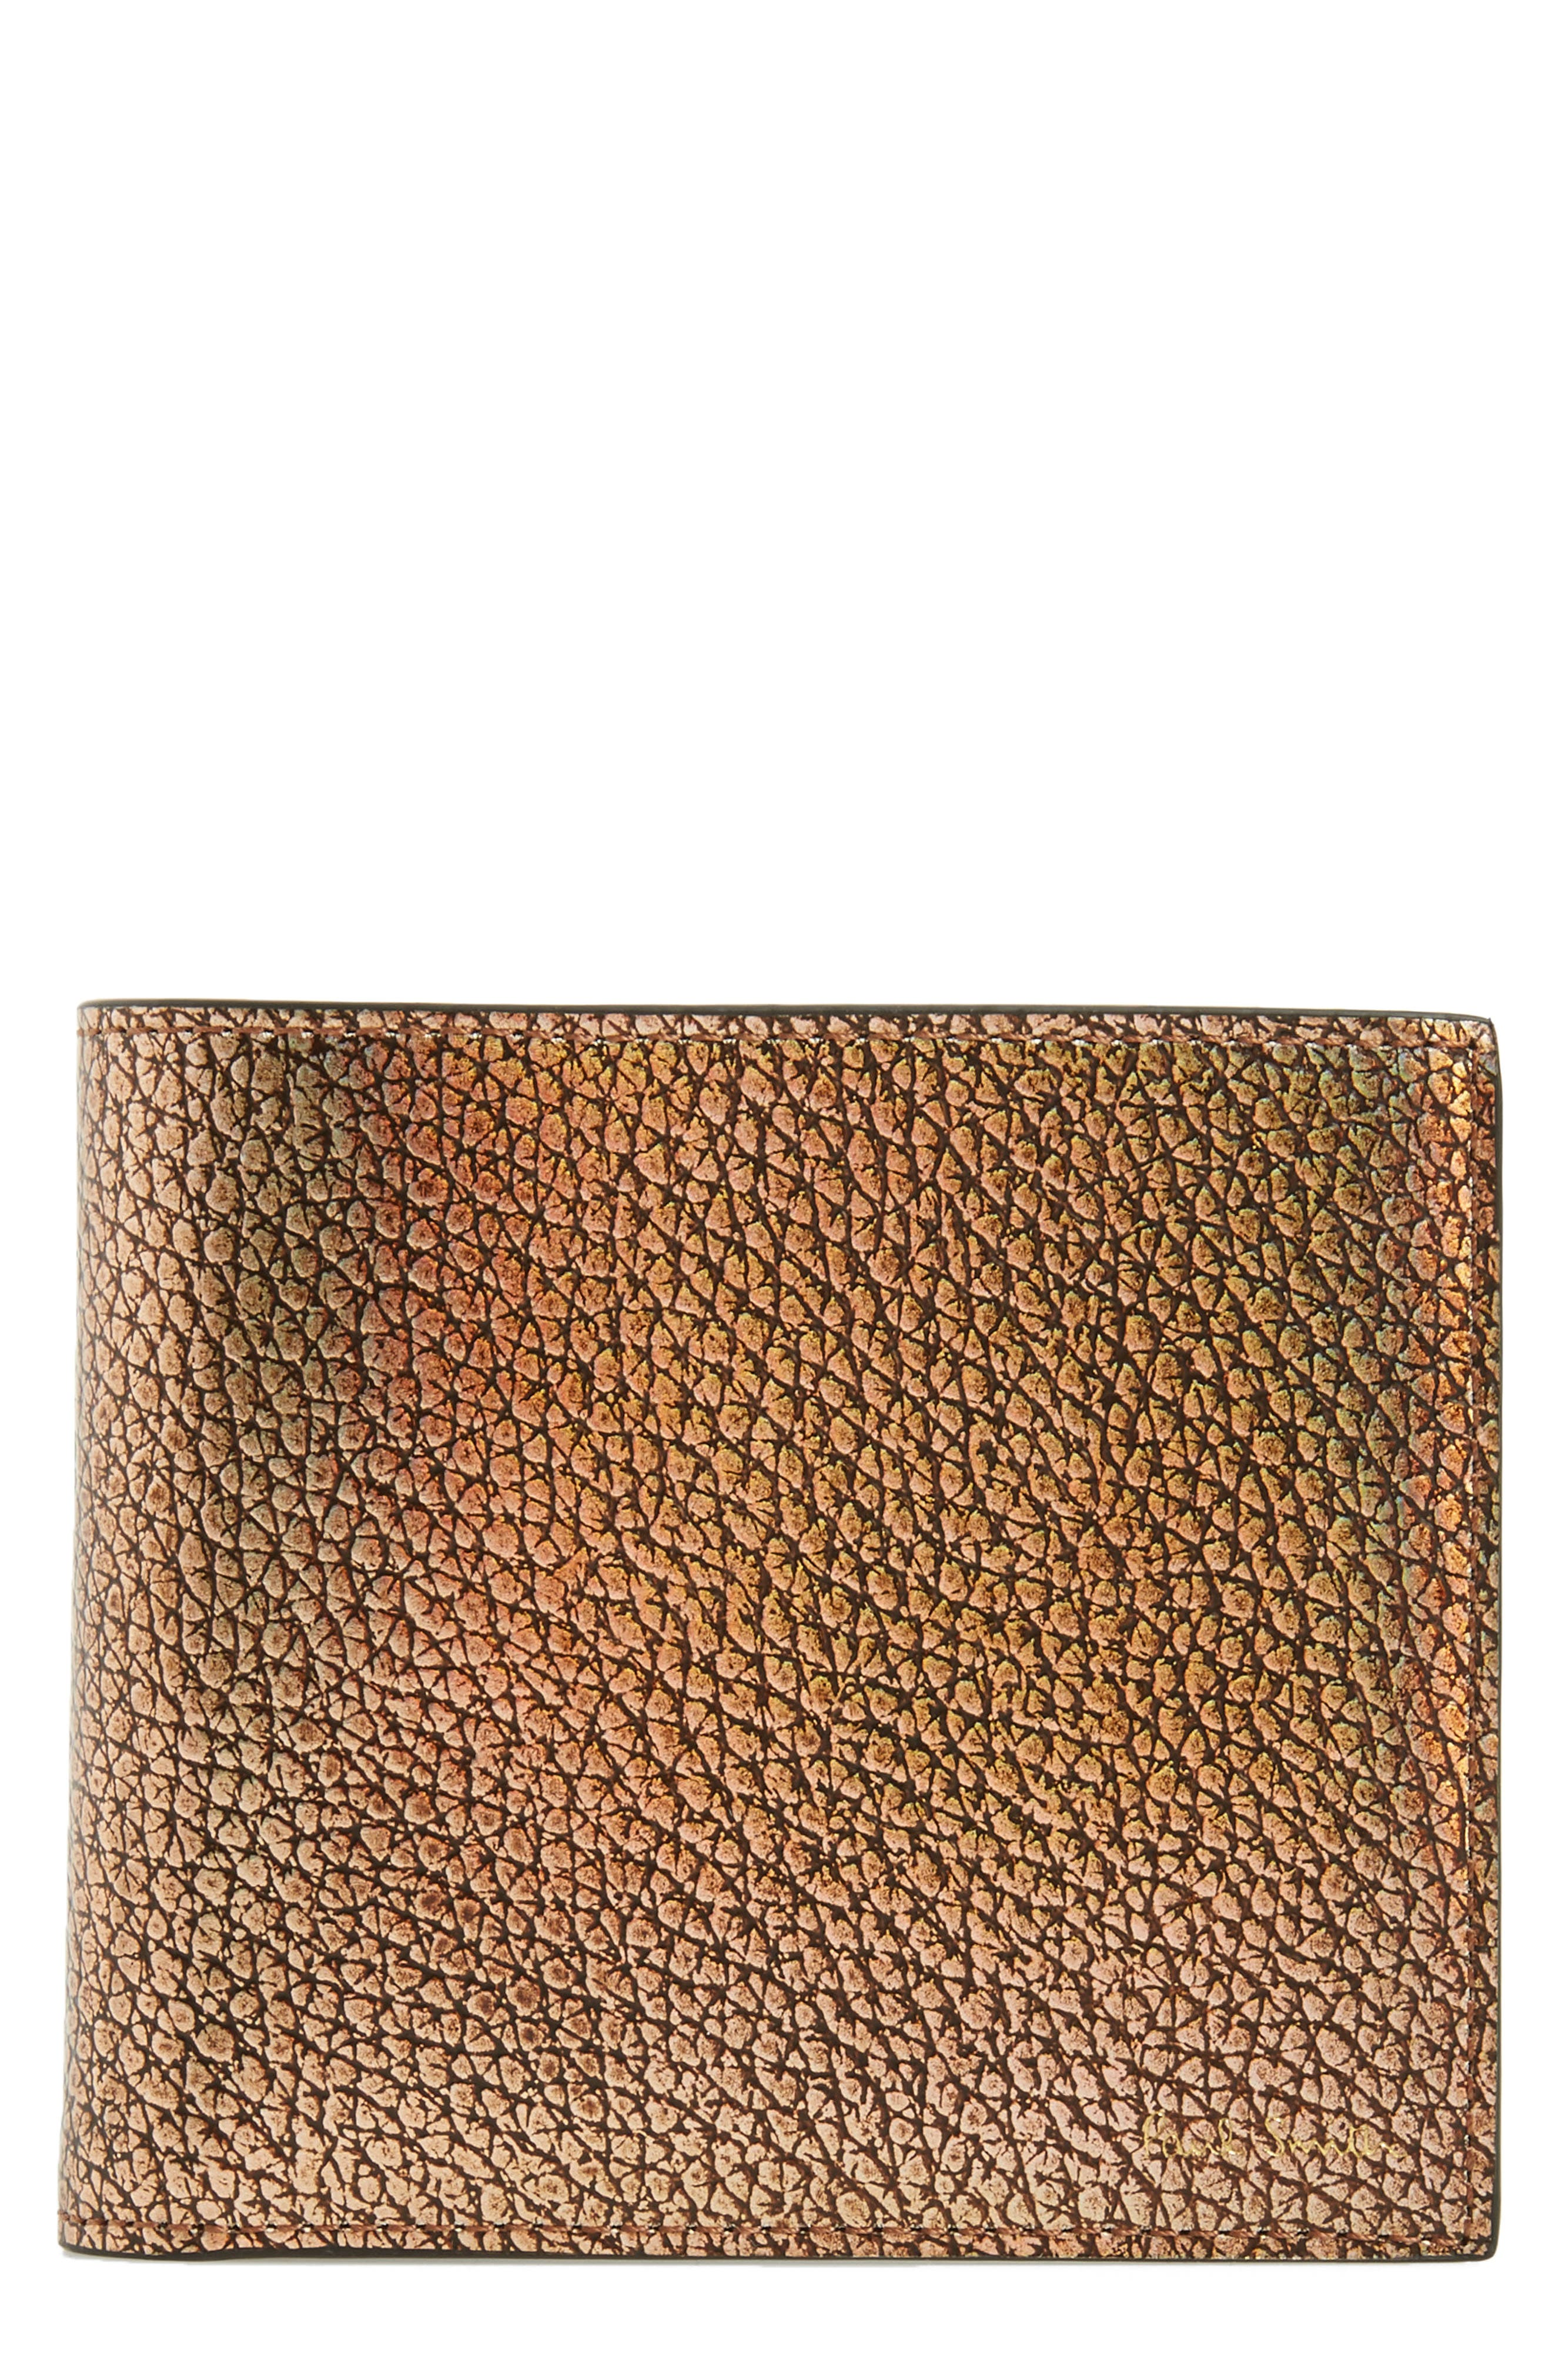 Metallic Leather Wallet,                         Main,                         color, Gold